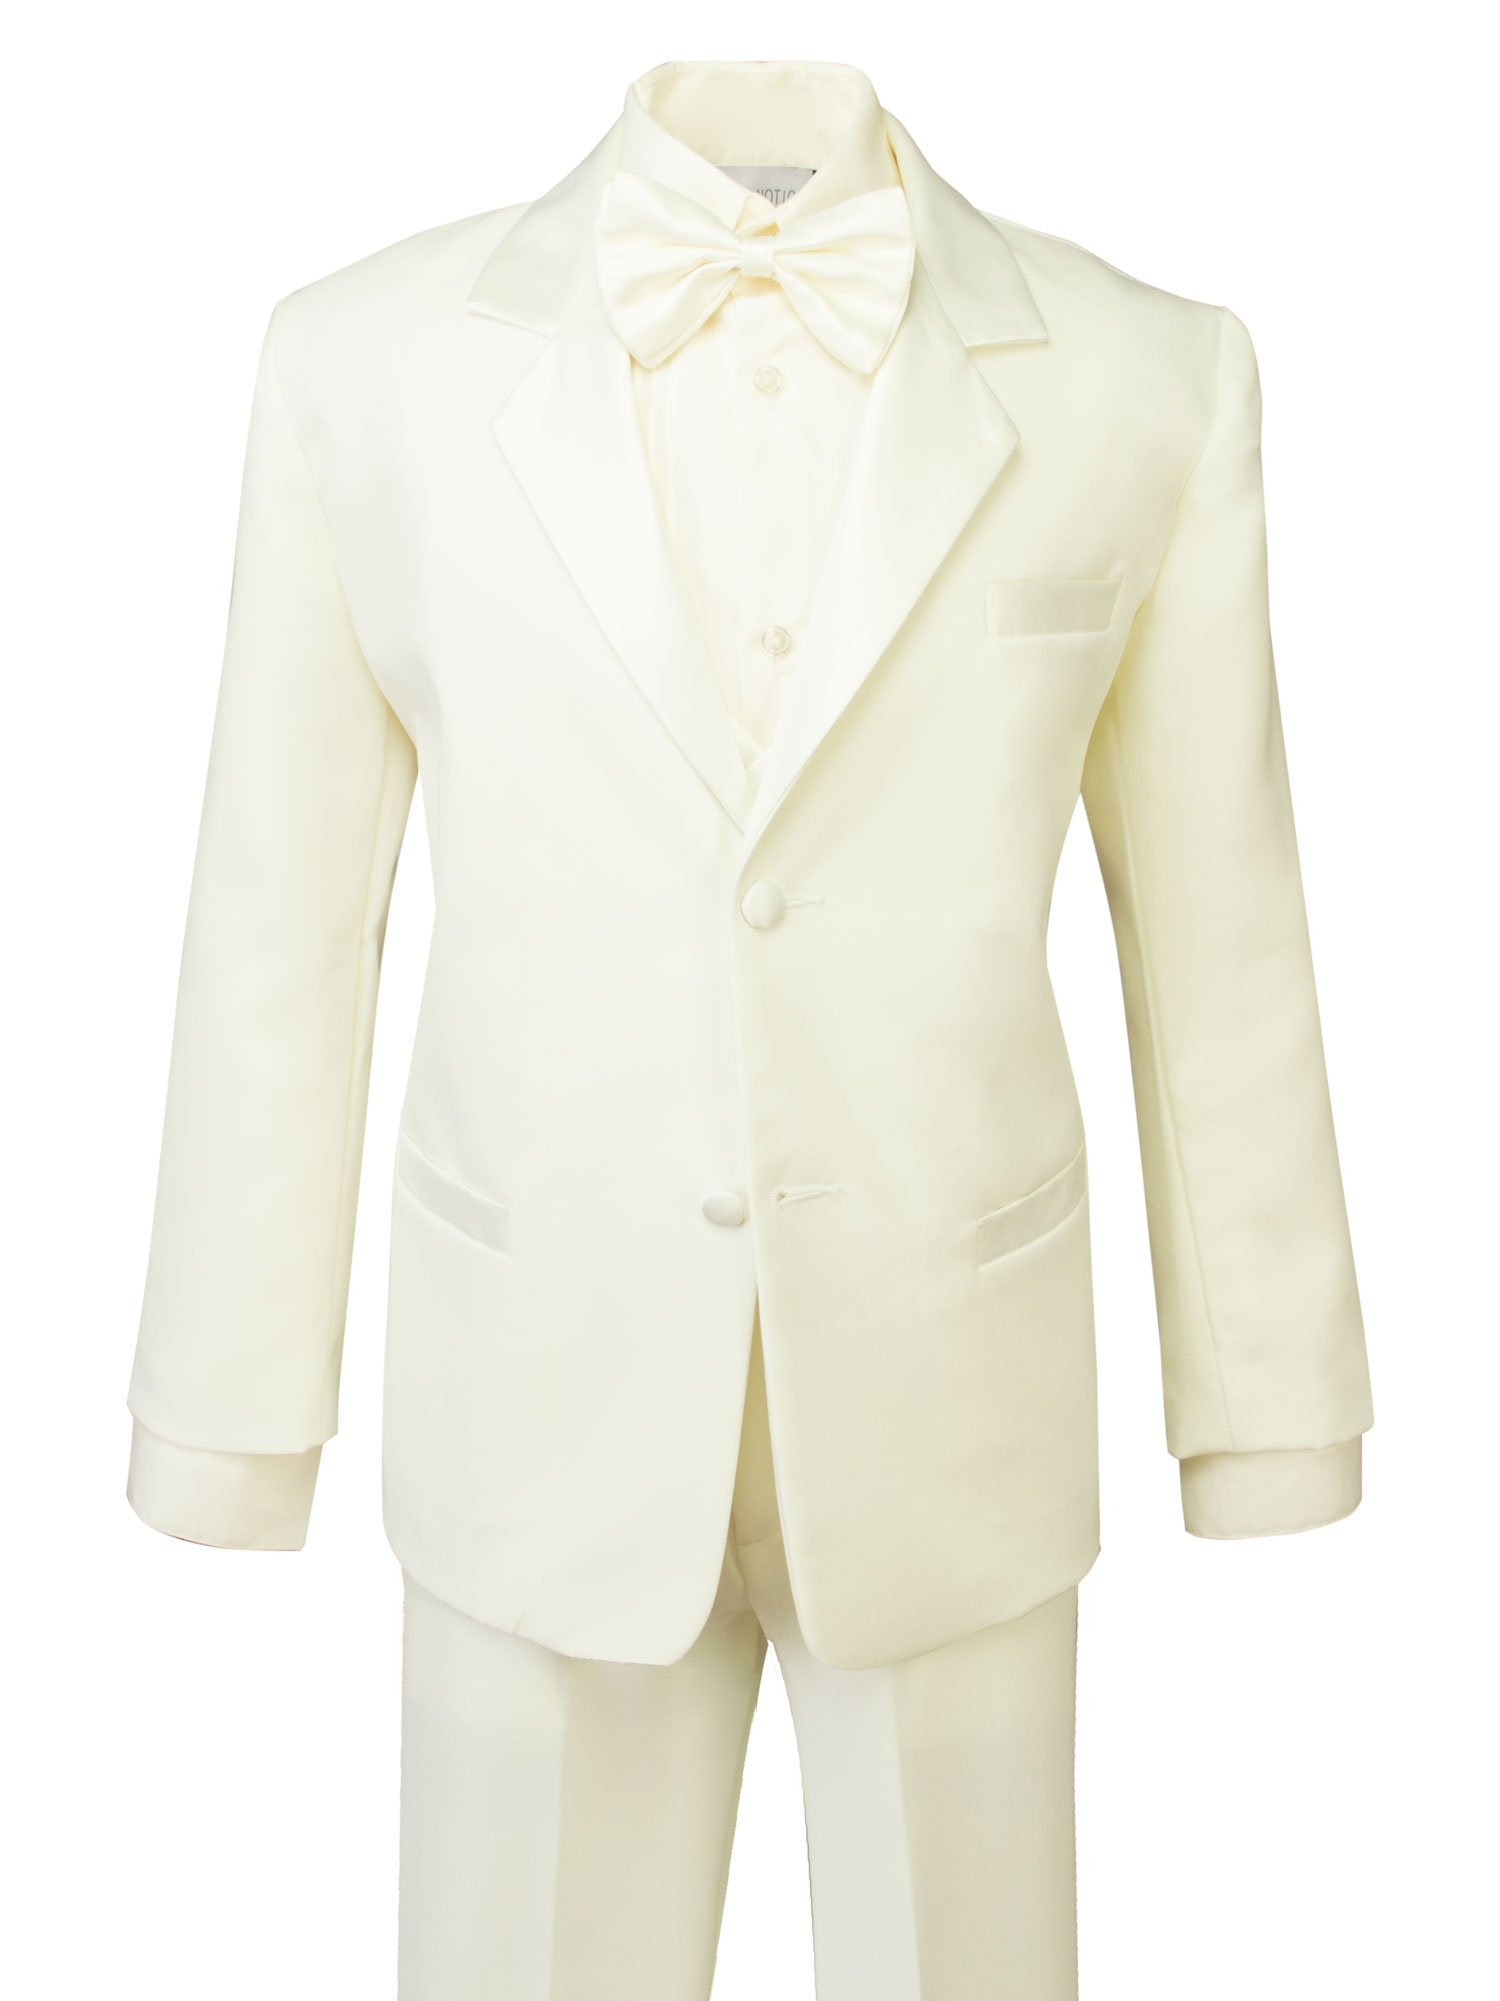 Spring Notion Boys' Classic Fit Tuxedo Set, No Tail 5 Ivory